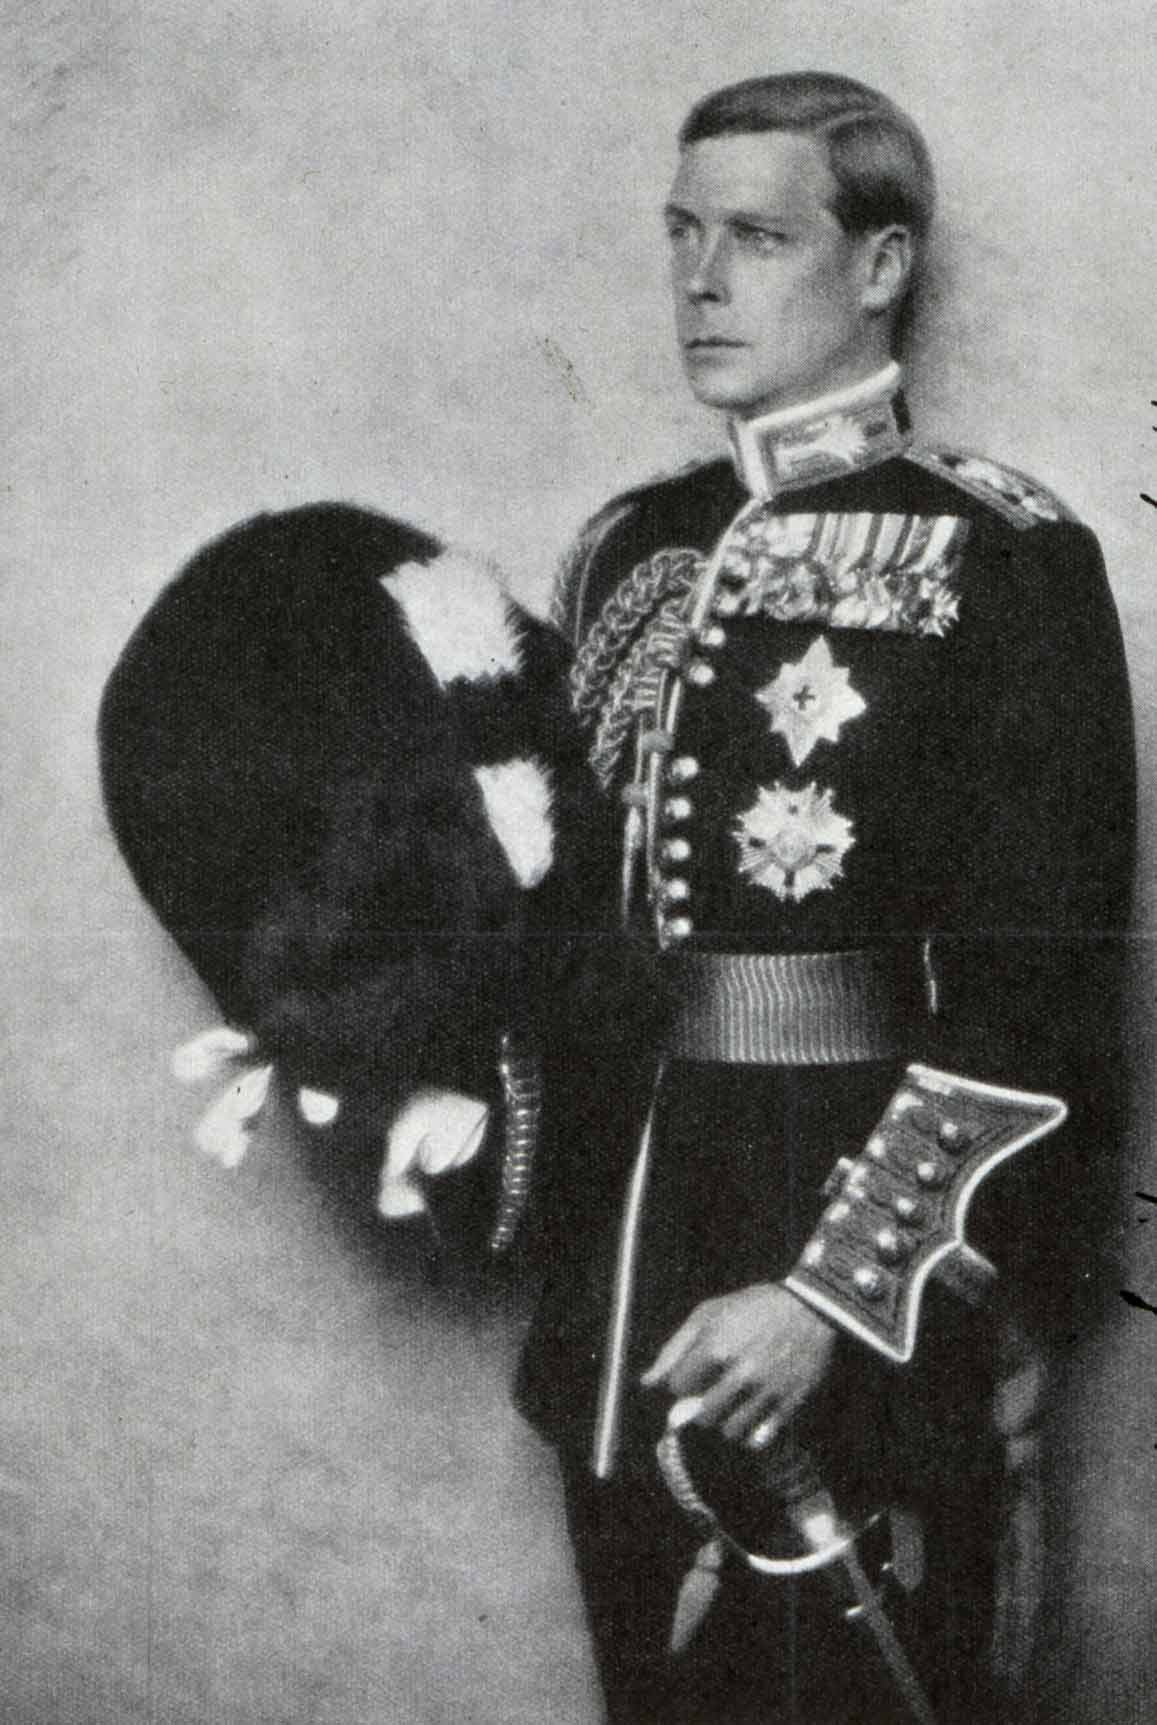 Abdication of Edward VIII